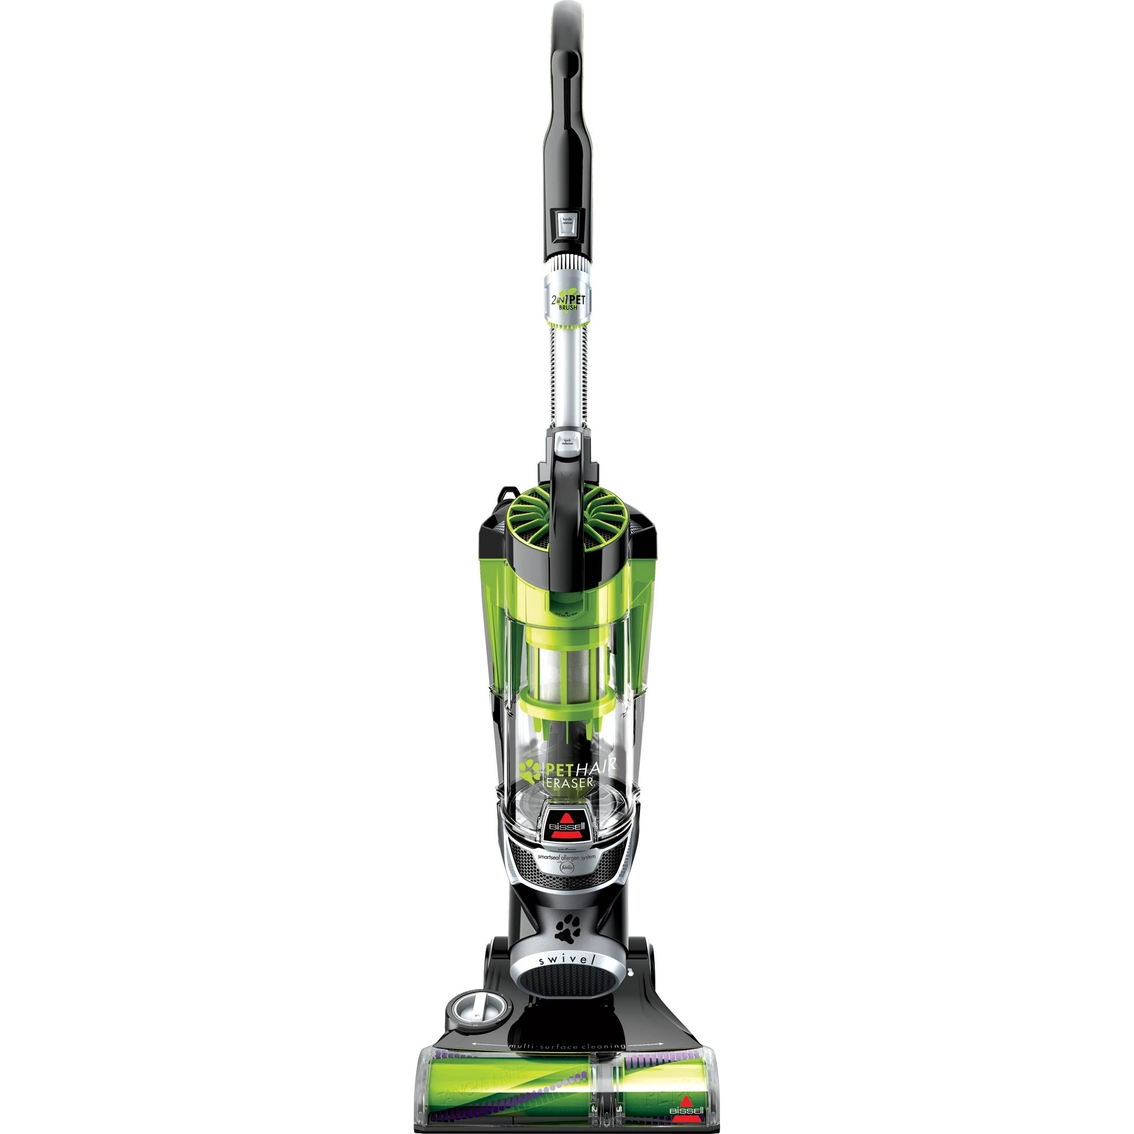 Bissell Pet Hair Eraser Upright Vacuum Vacuums Home Appliances Cleaner Wiring Diagram